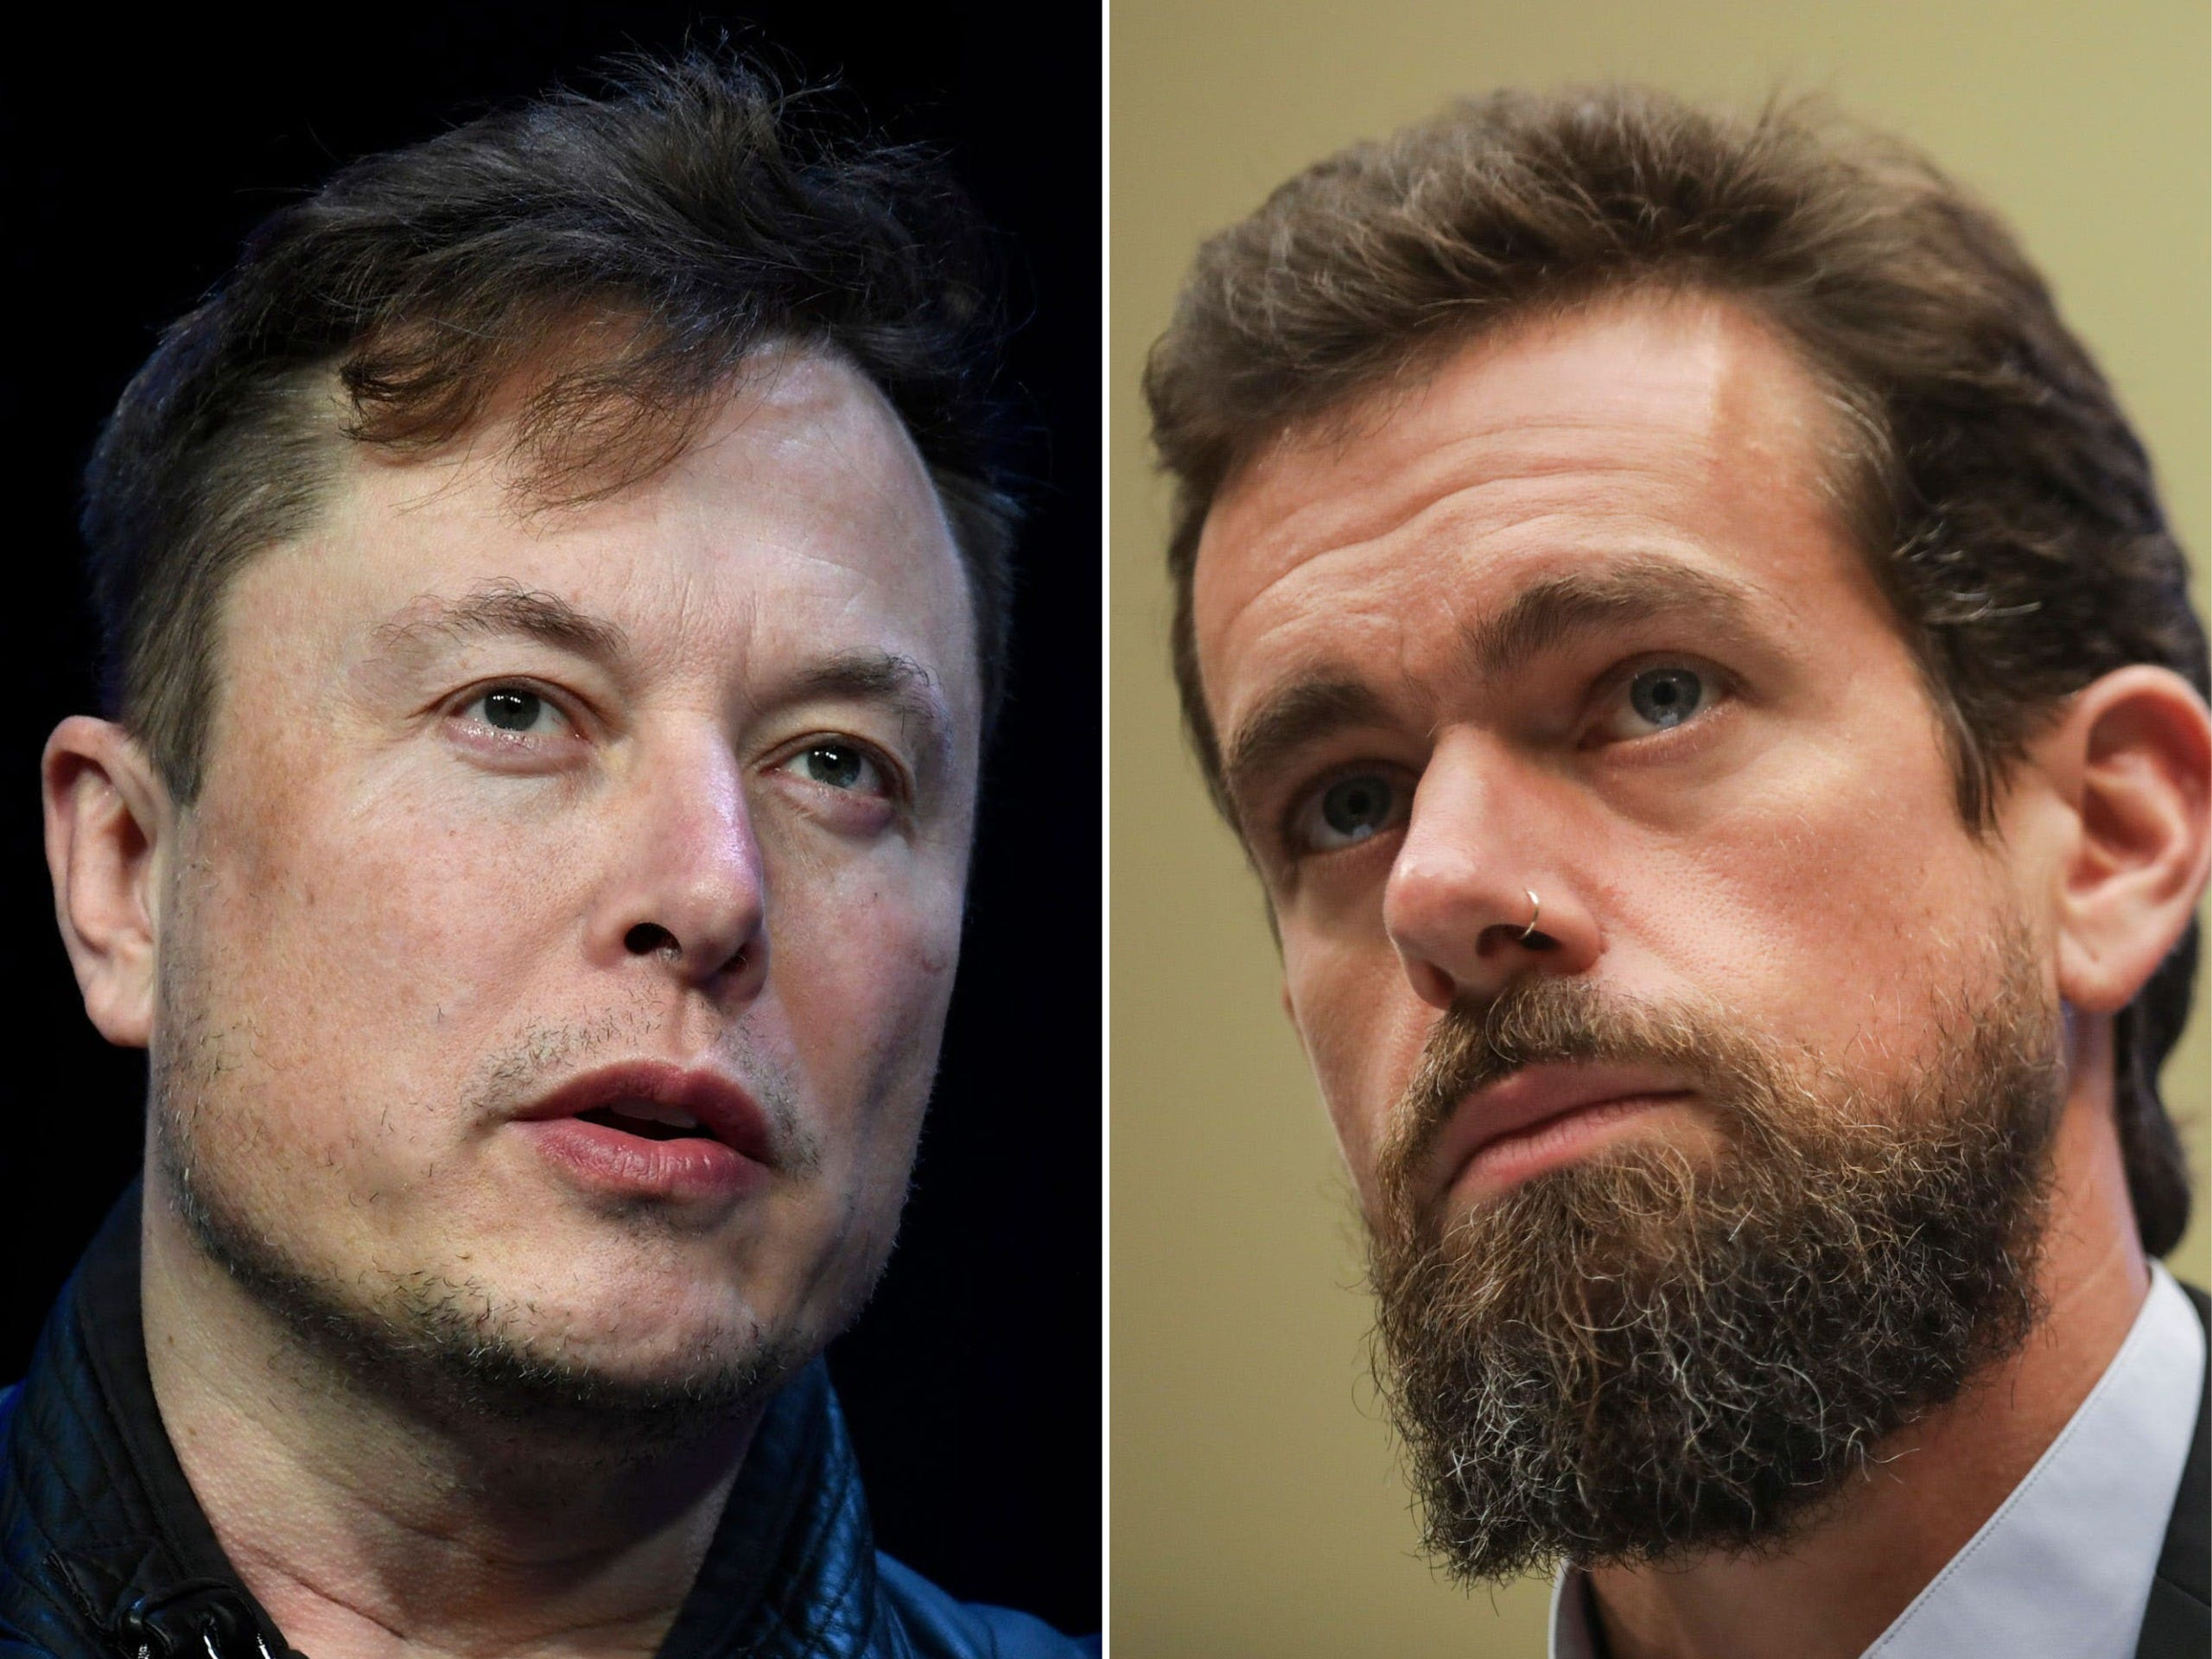 """Jack Dorsey Invites Elon Musk To Have """"The Talk"""" About Bitcoin   CryptoGazette - Cryptocurrency News"""